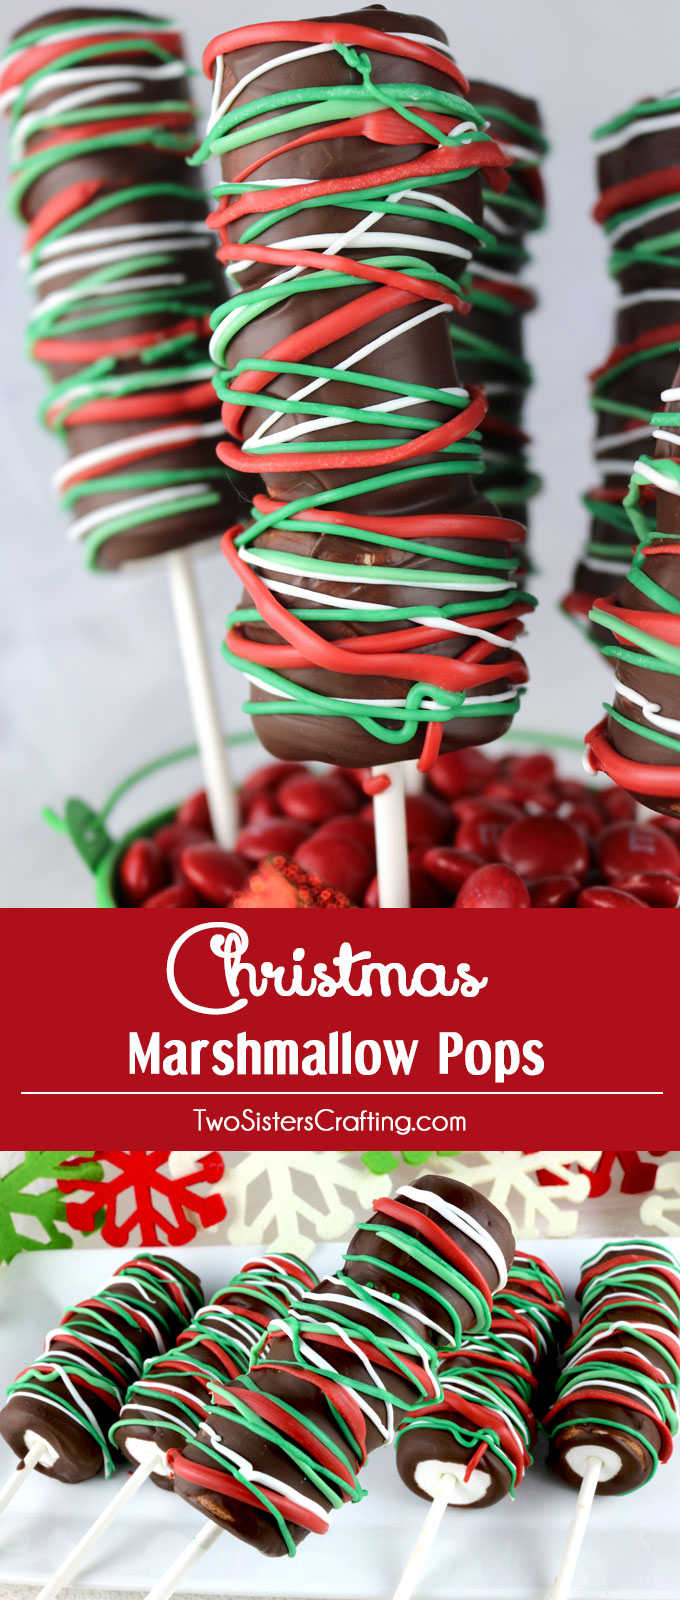 Christmas Marshmallow Pops - a festive and yummy Christmas dessert for your family. So easy to make and you won't believe how delicious these Chocolate covered Marshmallow Wands are. They would be a great Christmas Treat for this year's Holiday Party. Pin this delicious Christmas Candy for later and follow us for more great Christmas Food Ideas.